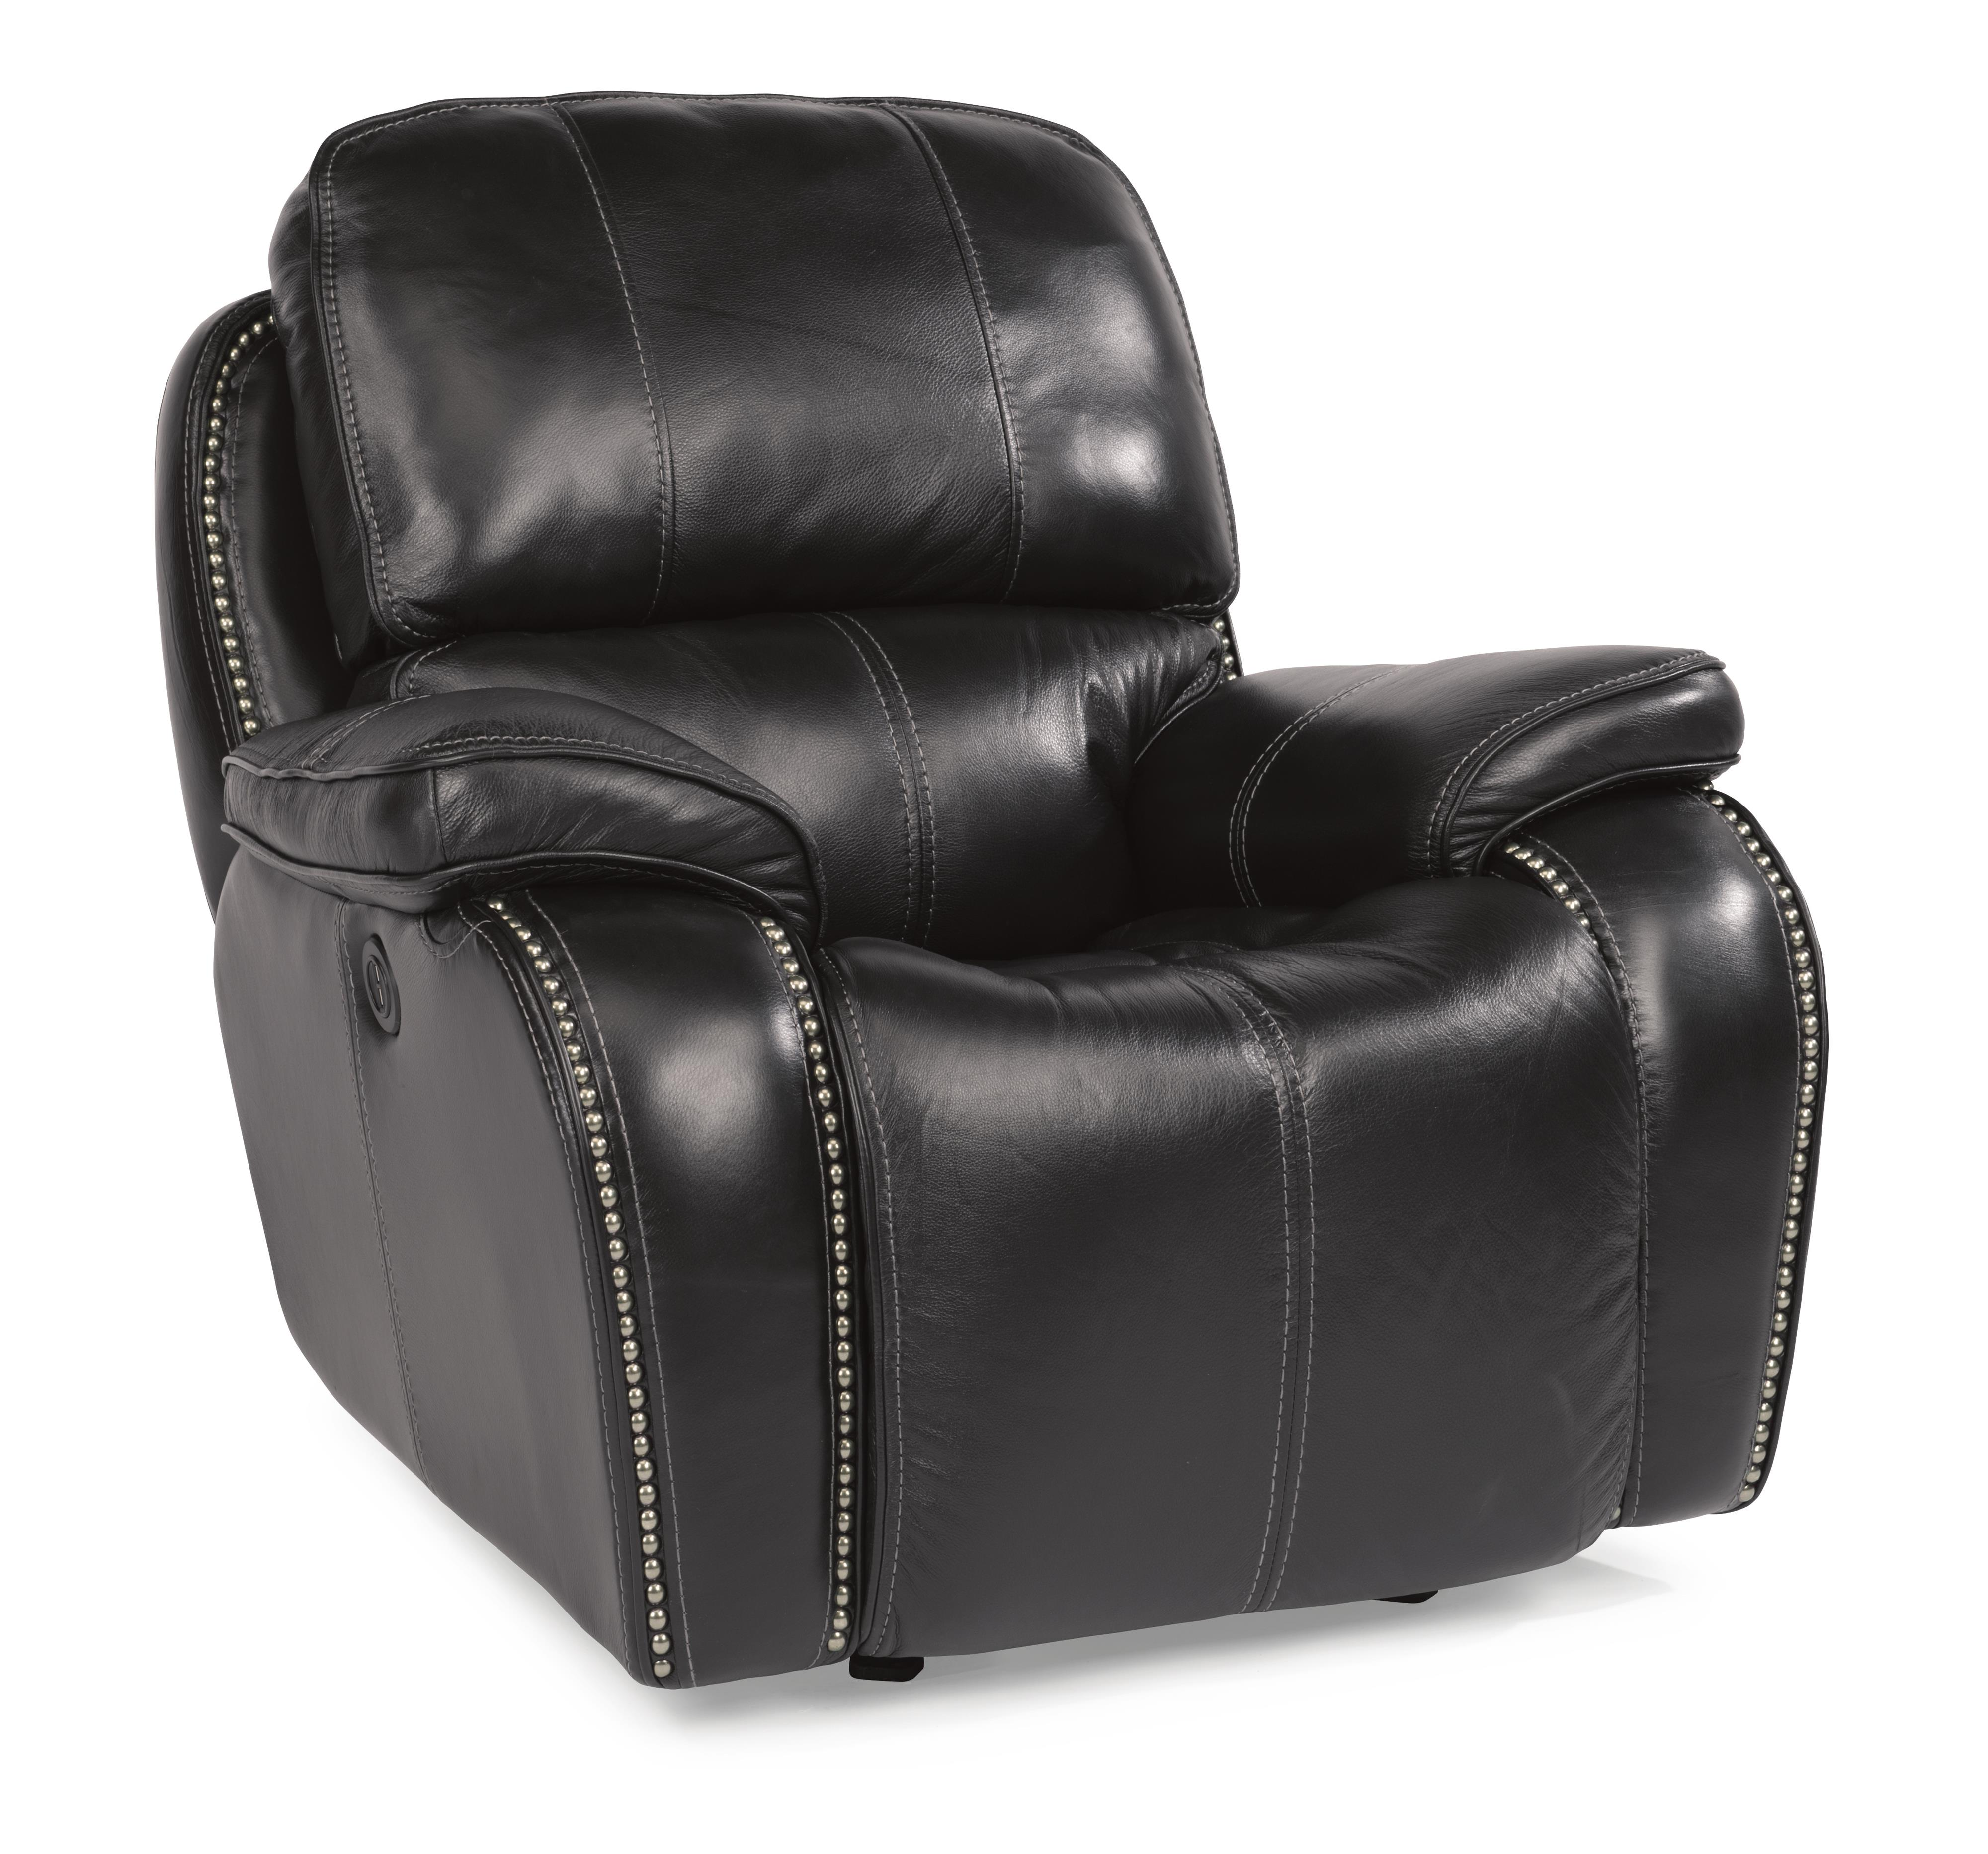 Flexsteel latitudes mackay 1617 54p power gliding recliner for Outdoor furniture mackay